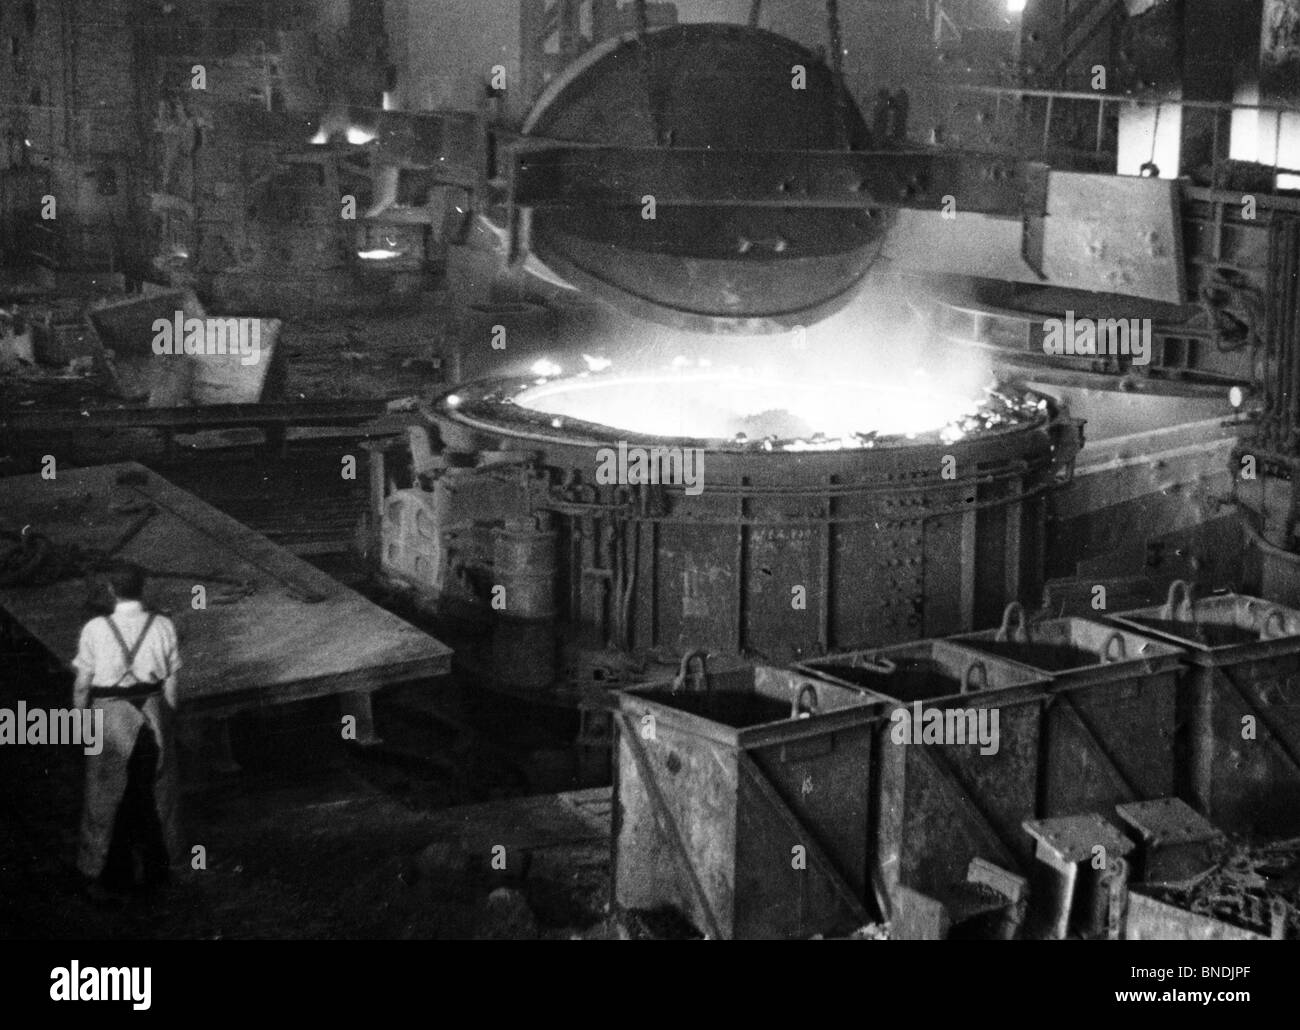 Foundry Worker Black and White Stock Photos & Images - Alamy